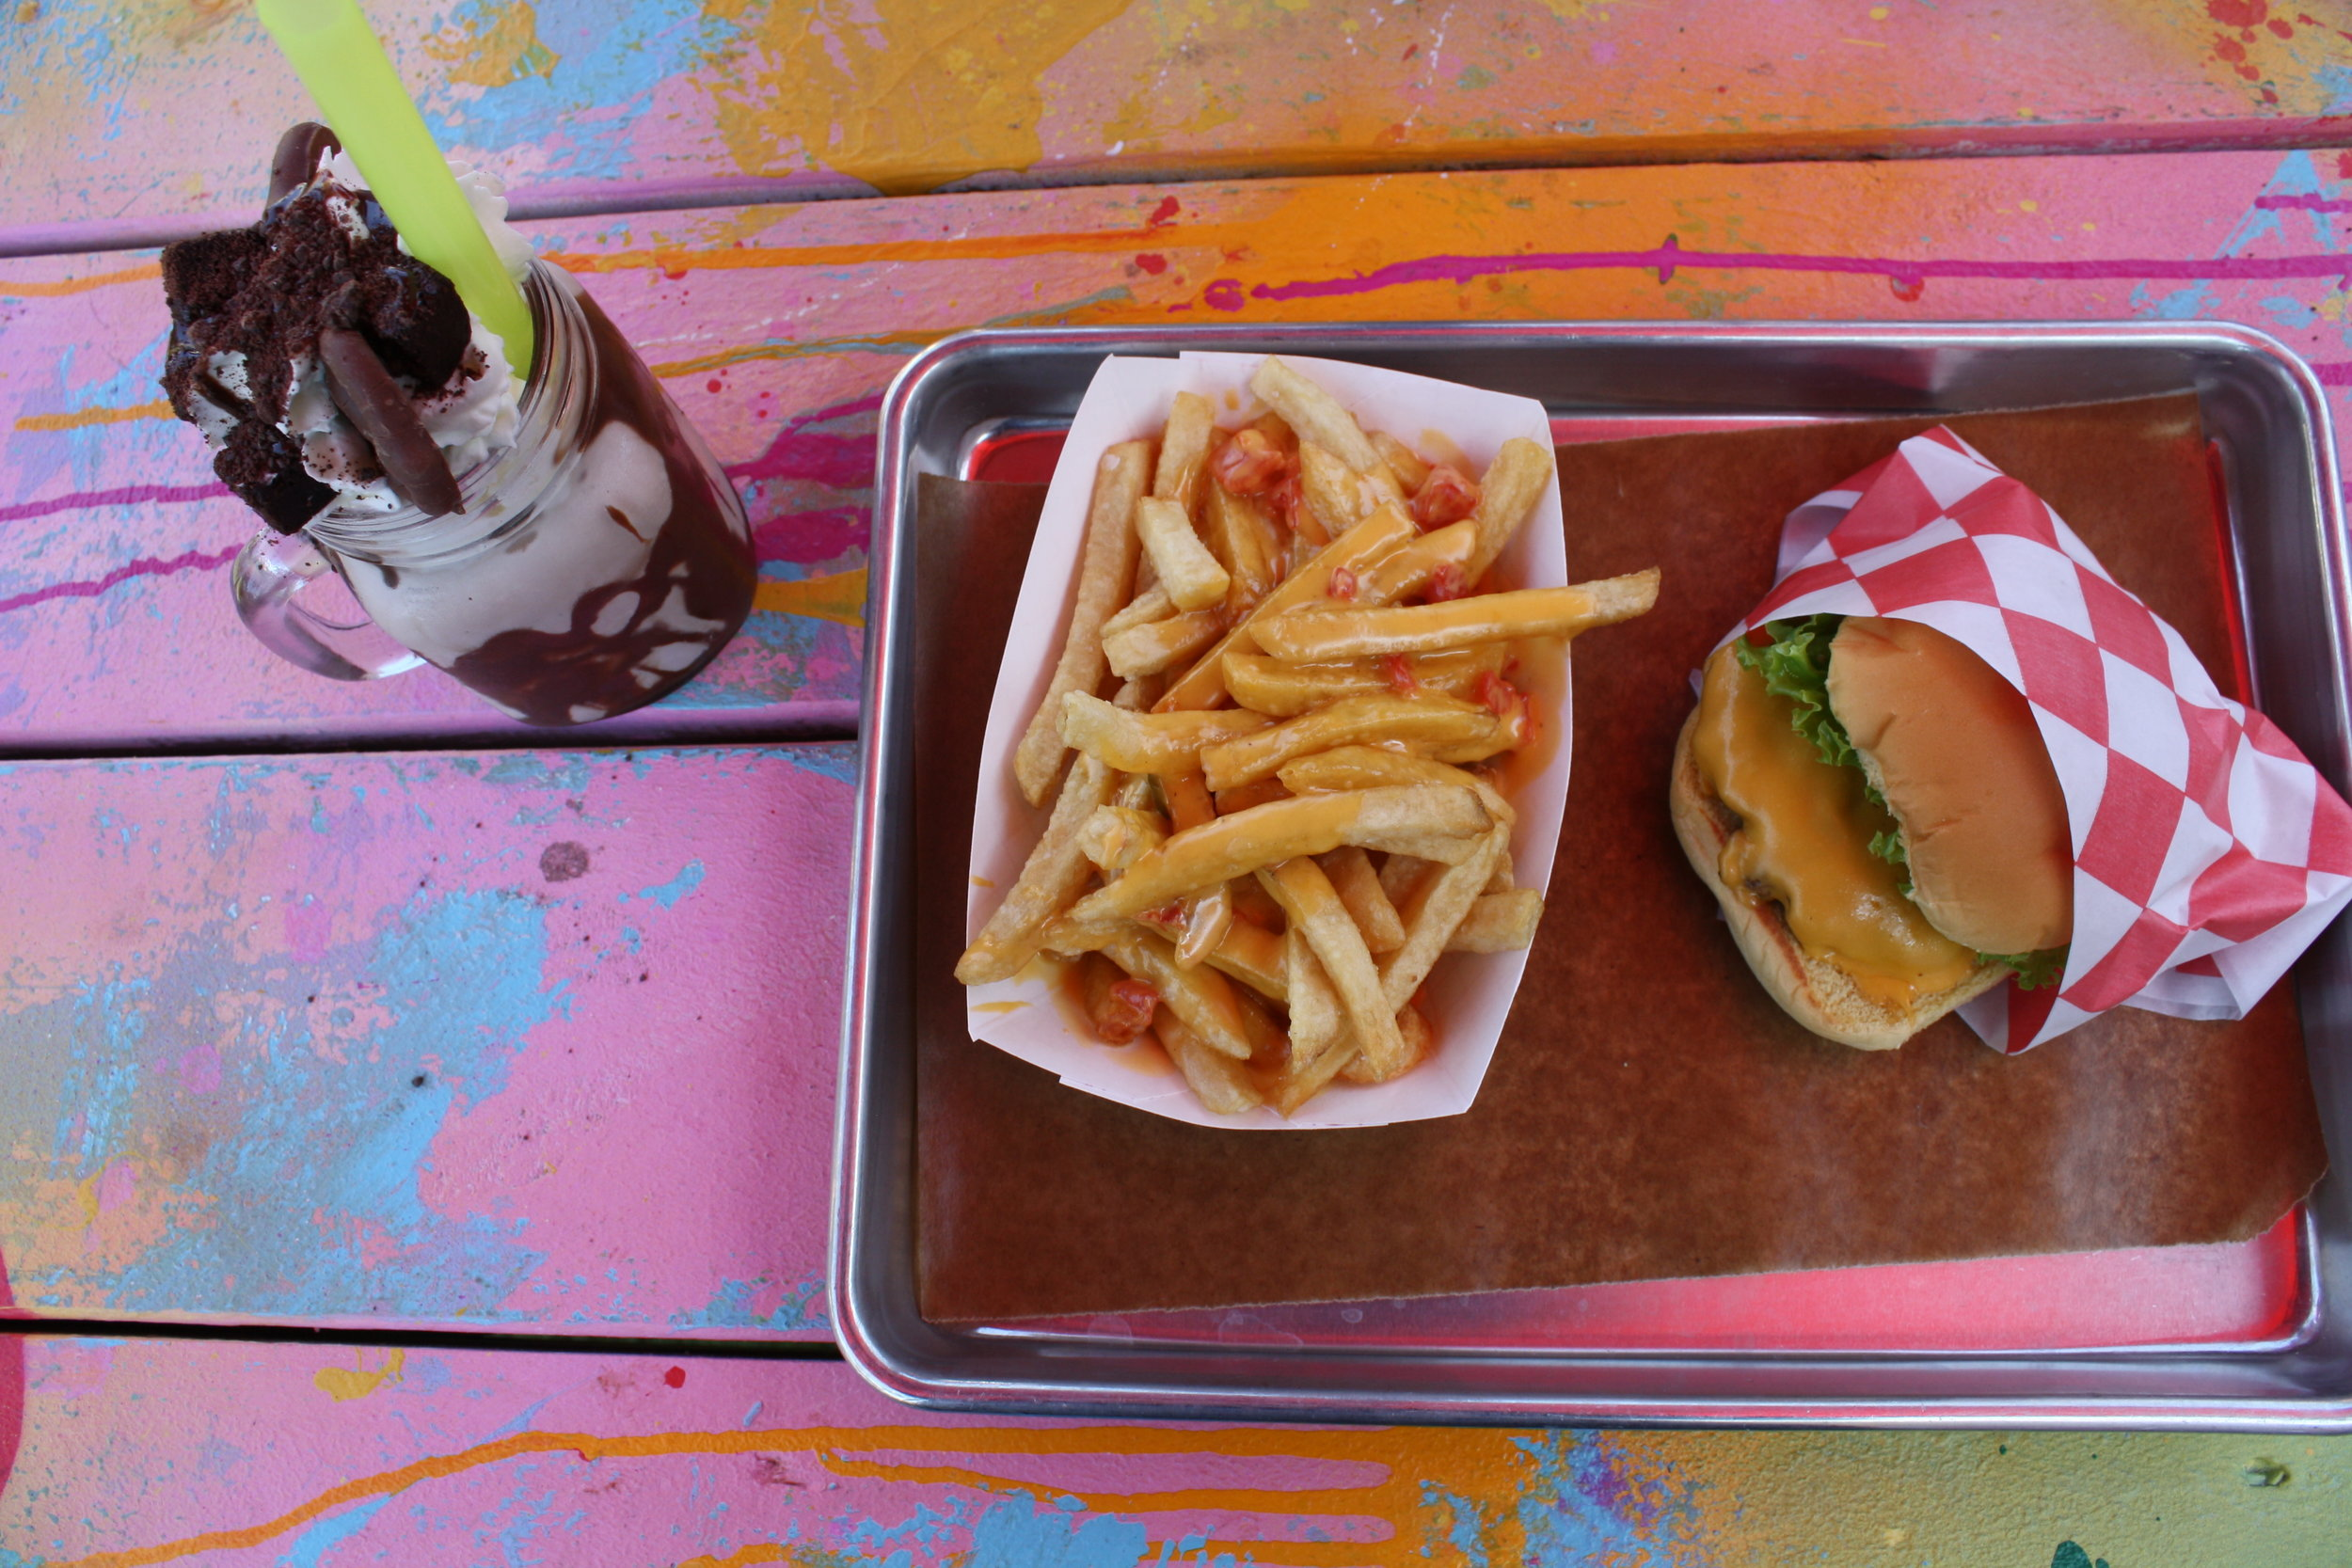 FM Burger, Fries with queso, and Chocolate shake